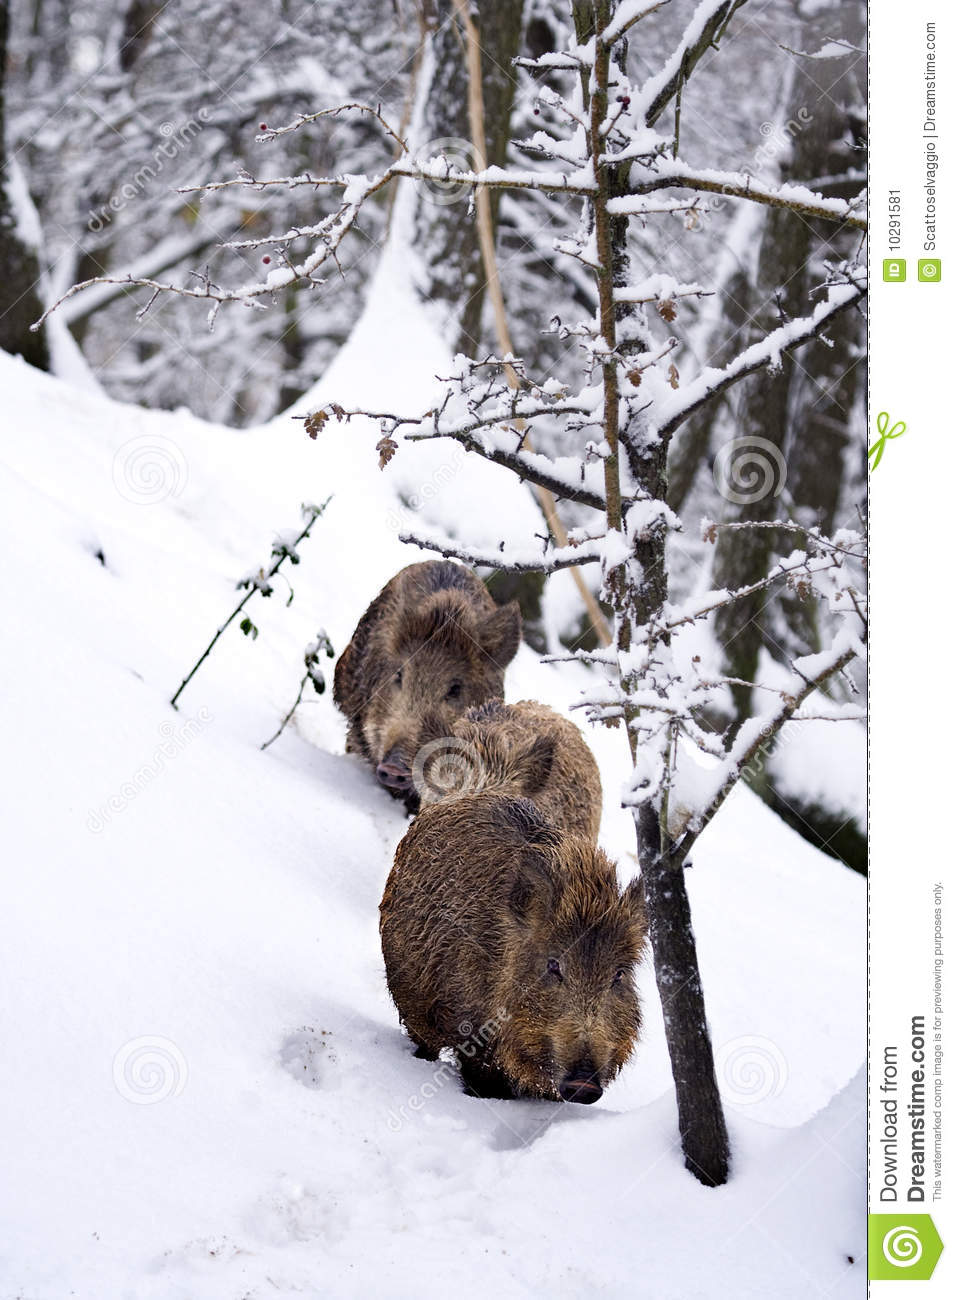 Wild boars or Wild hogs (Sus scrofa) in the snow. Three young wild boars walking in the snow, in the woods, in winter.